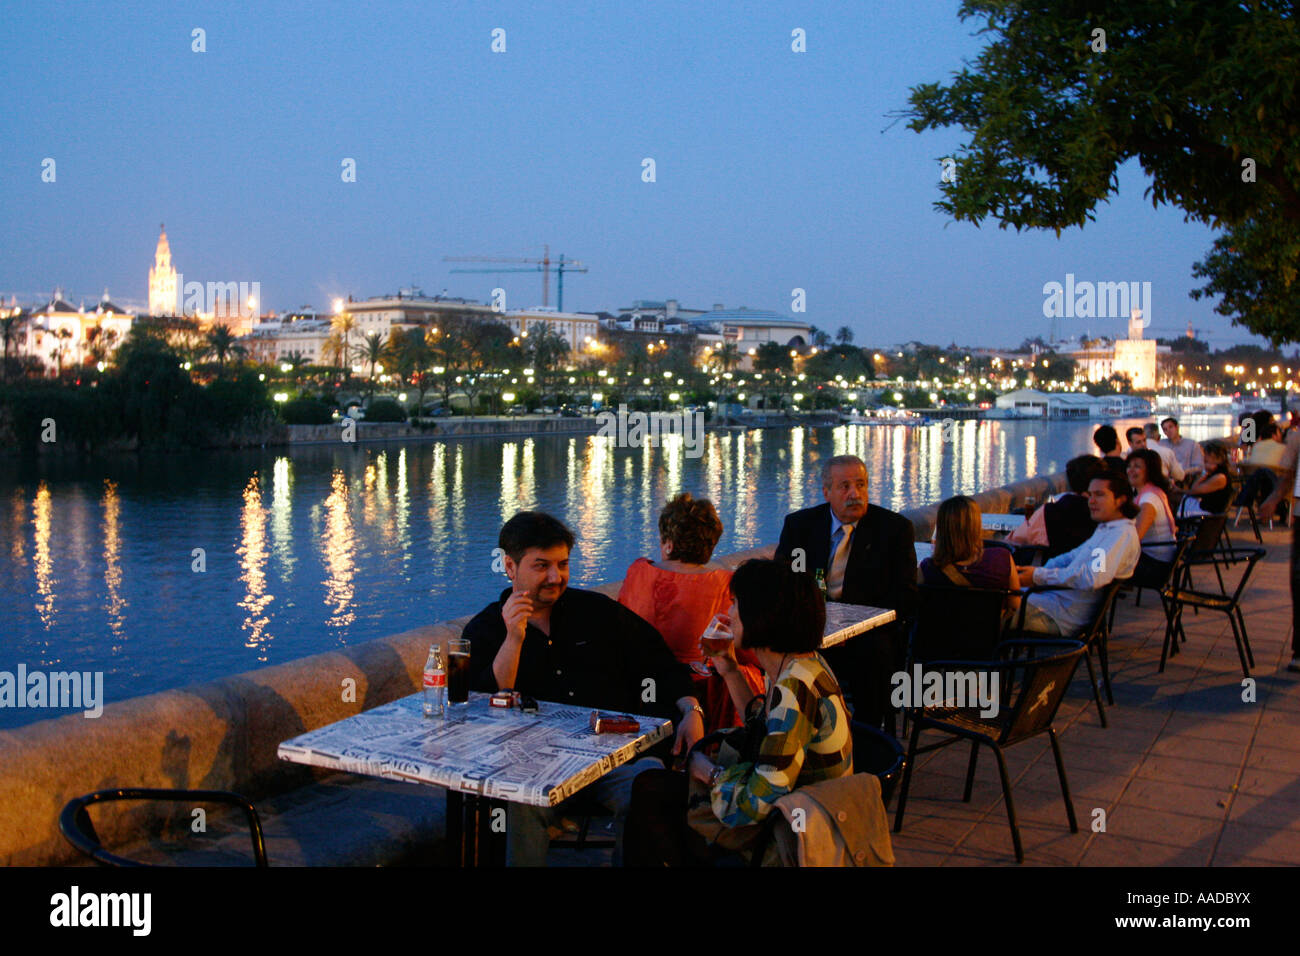 People Sitting At Restaurant By The Guadalquivir River